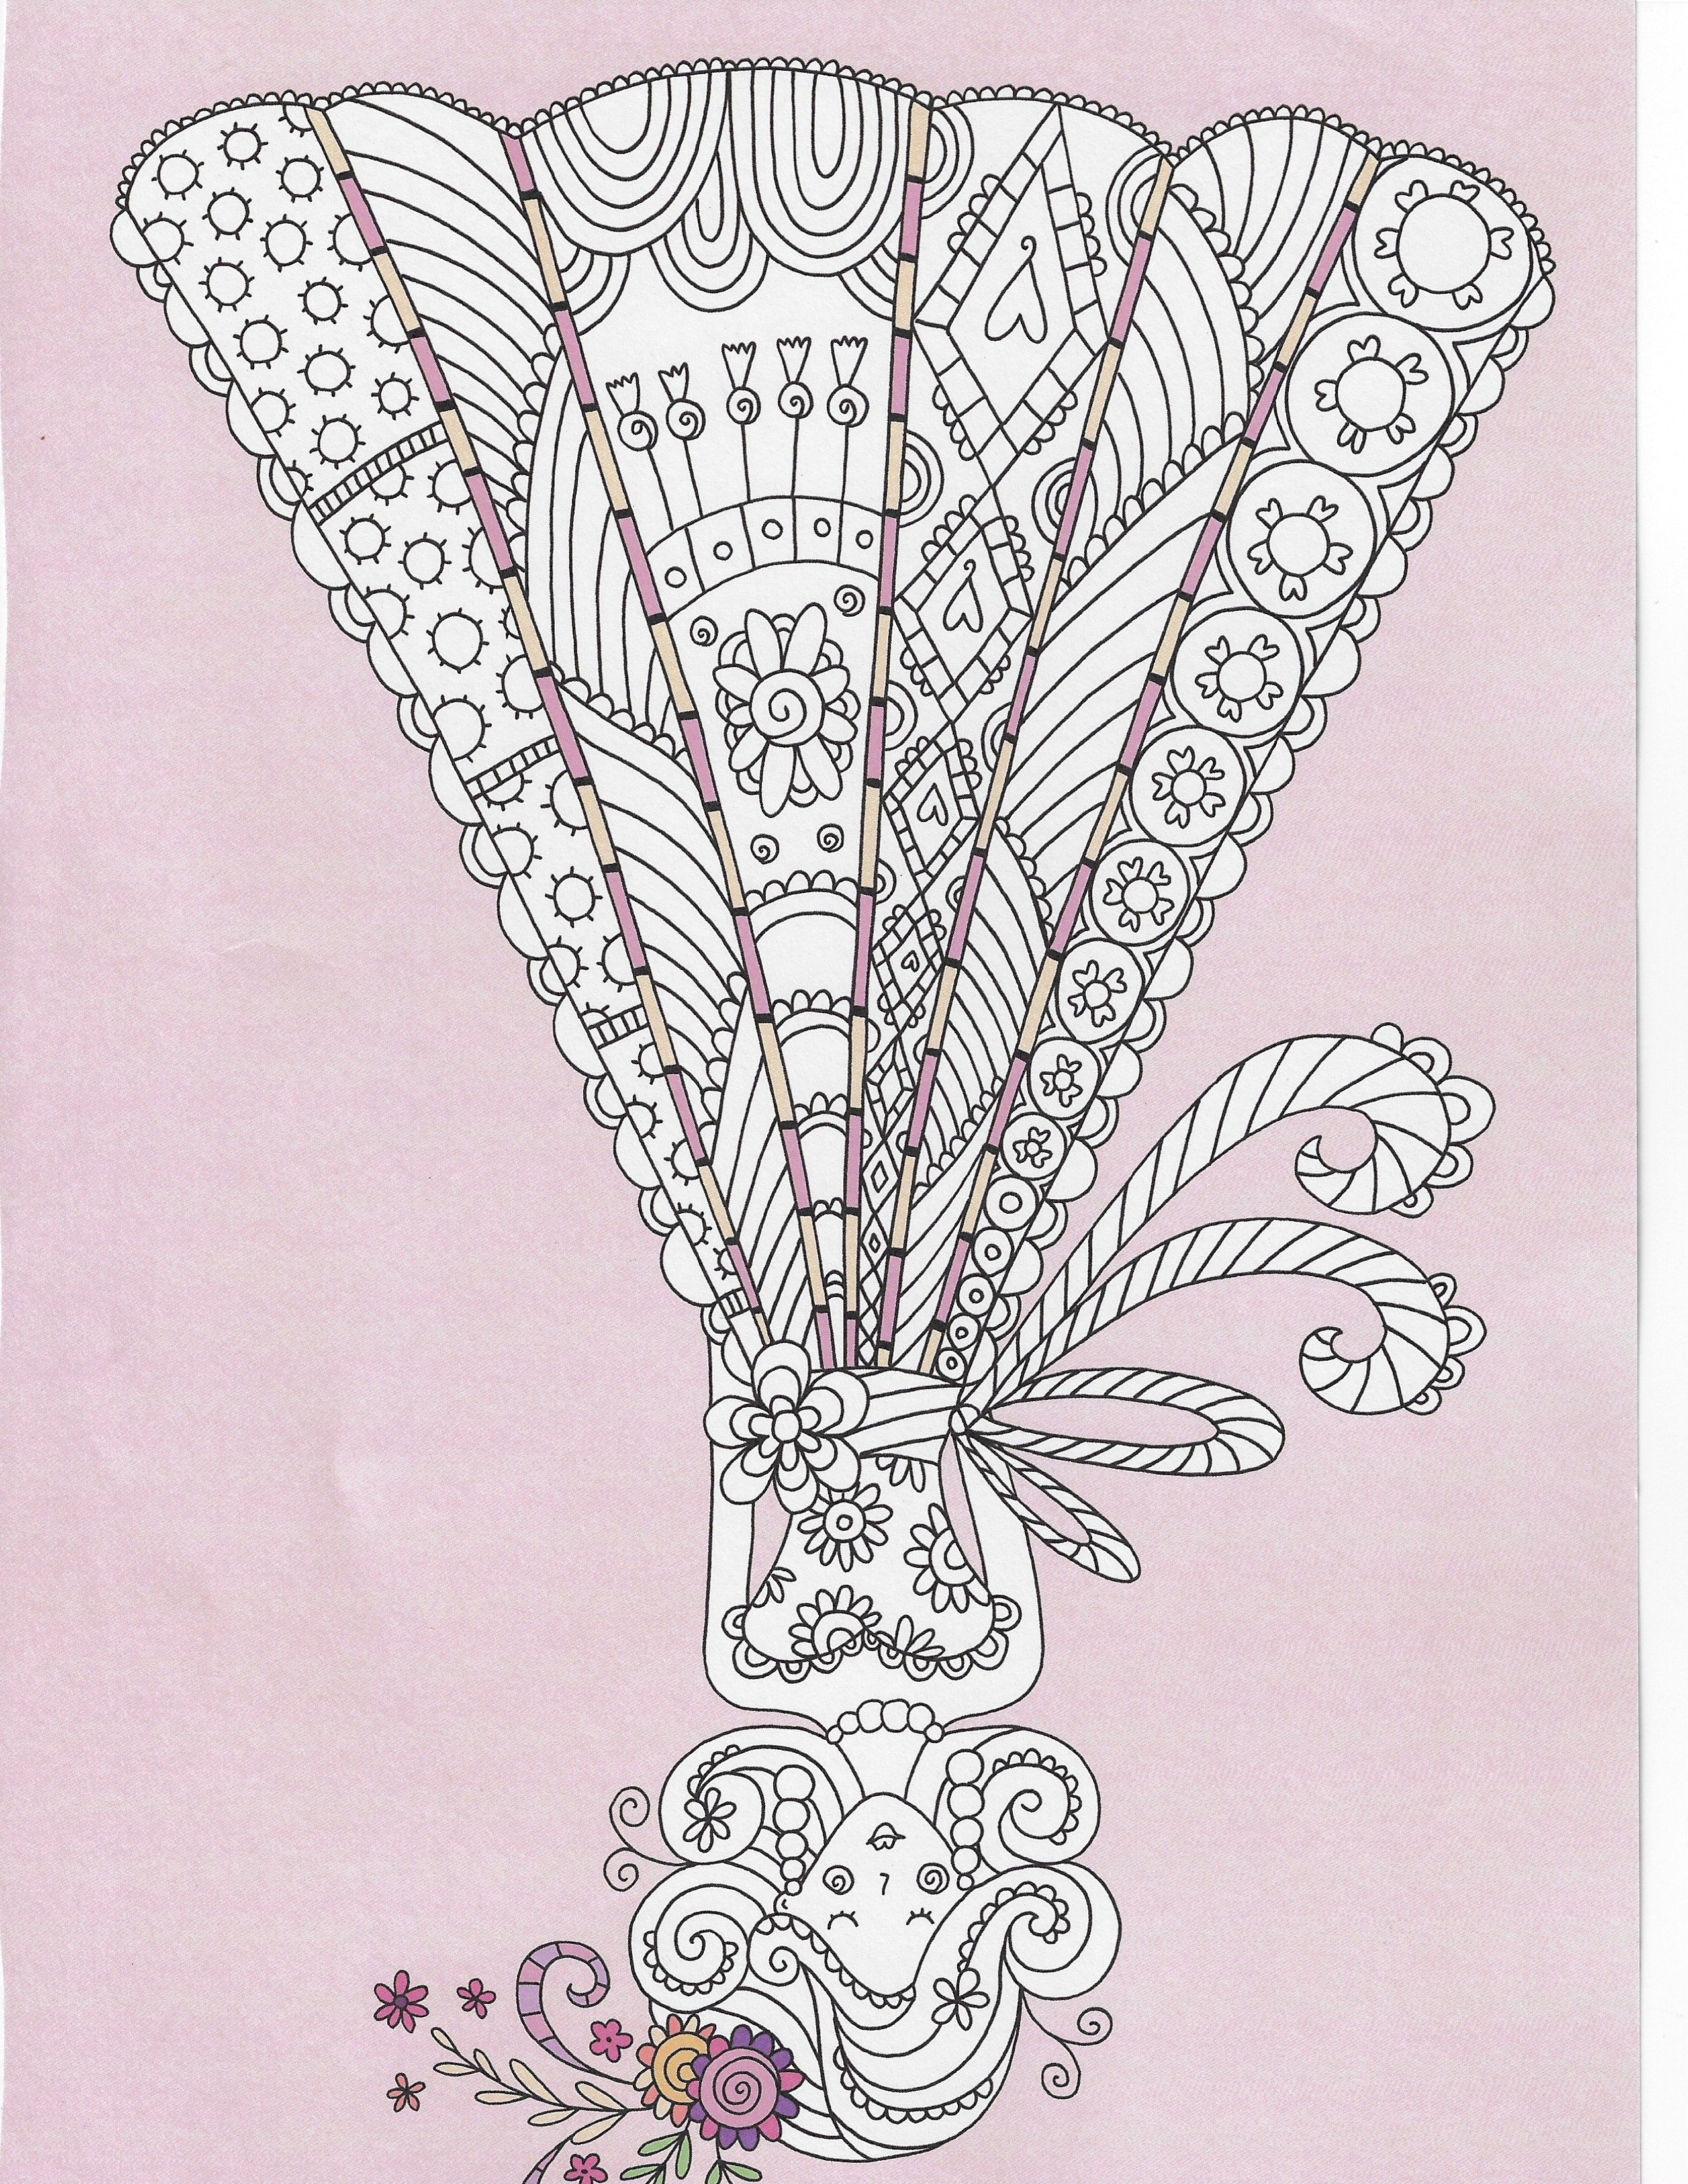 2019 scanned coloring pages image by LaLa Dewitt